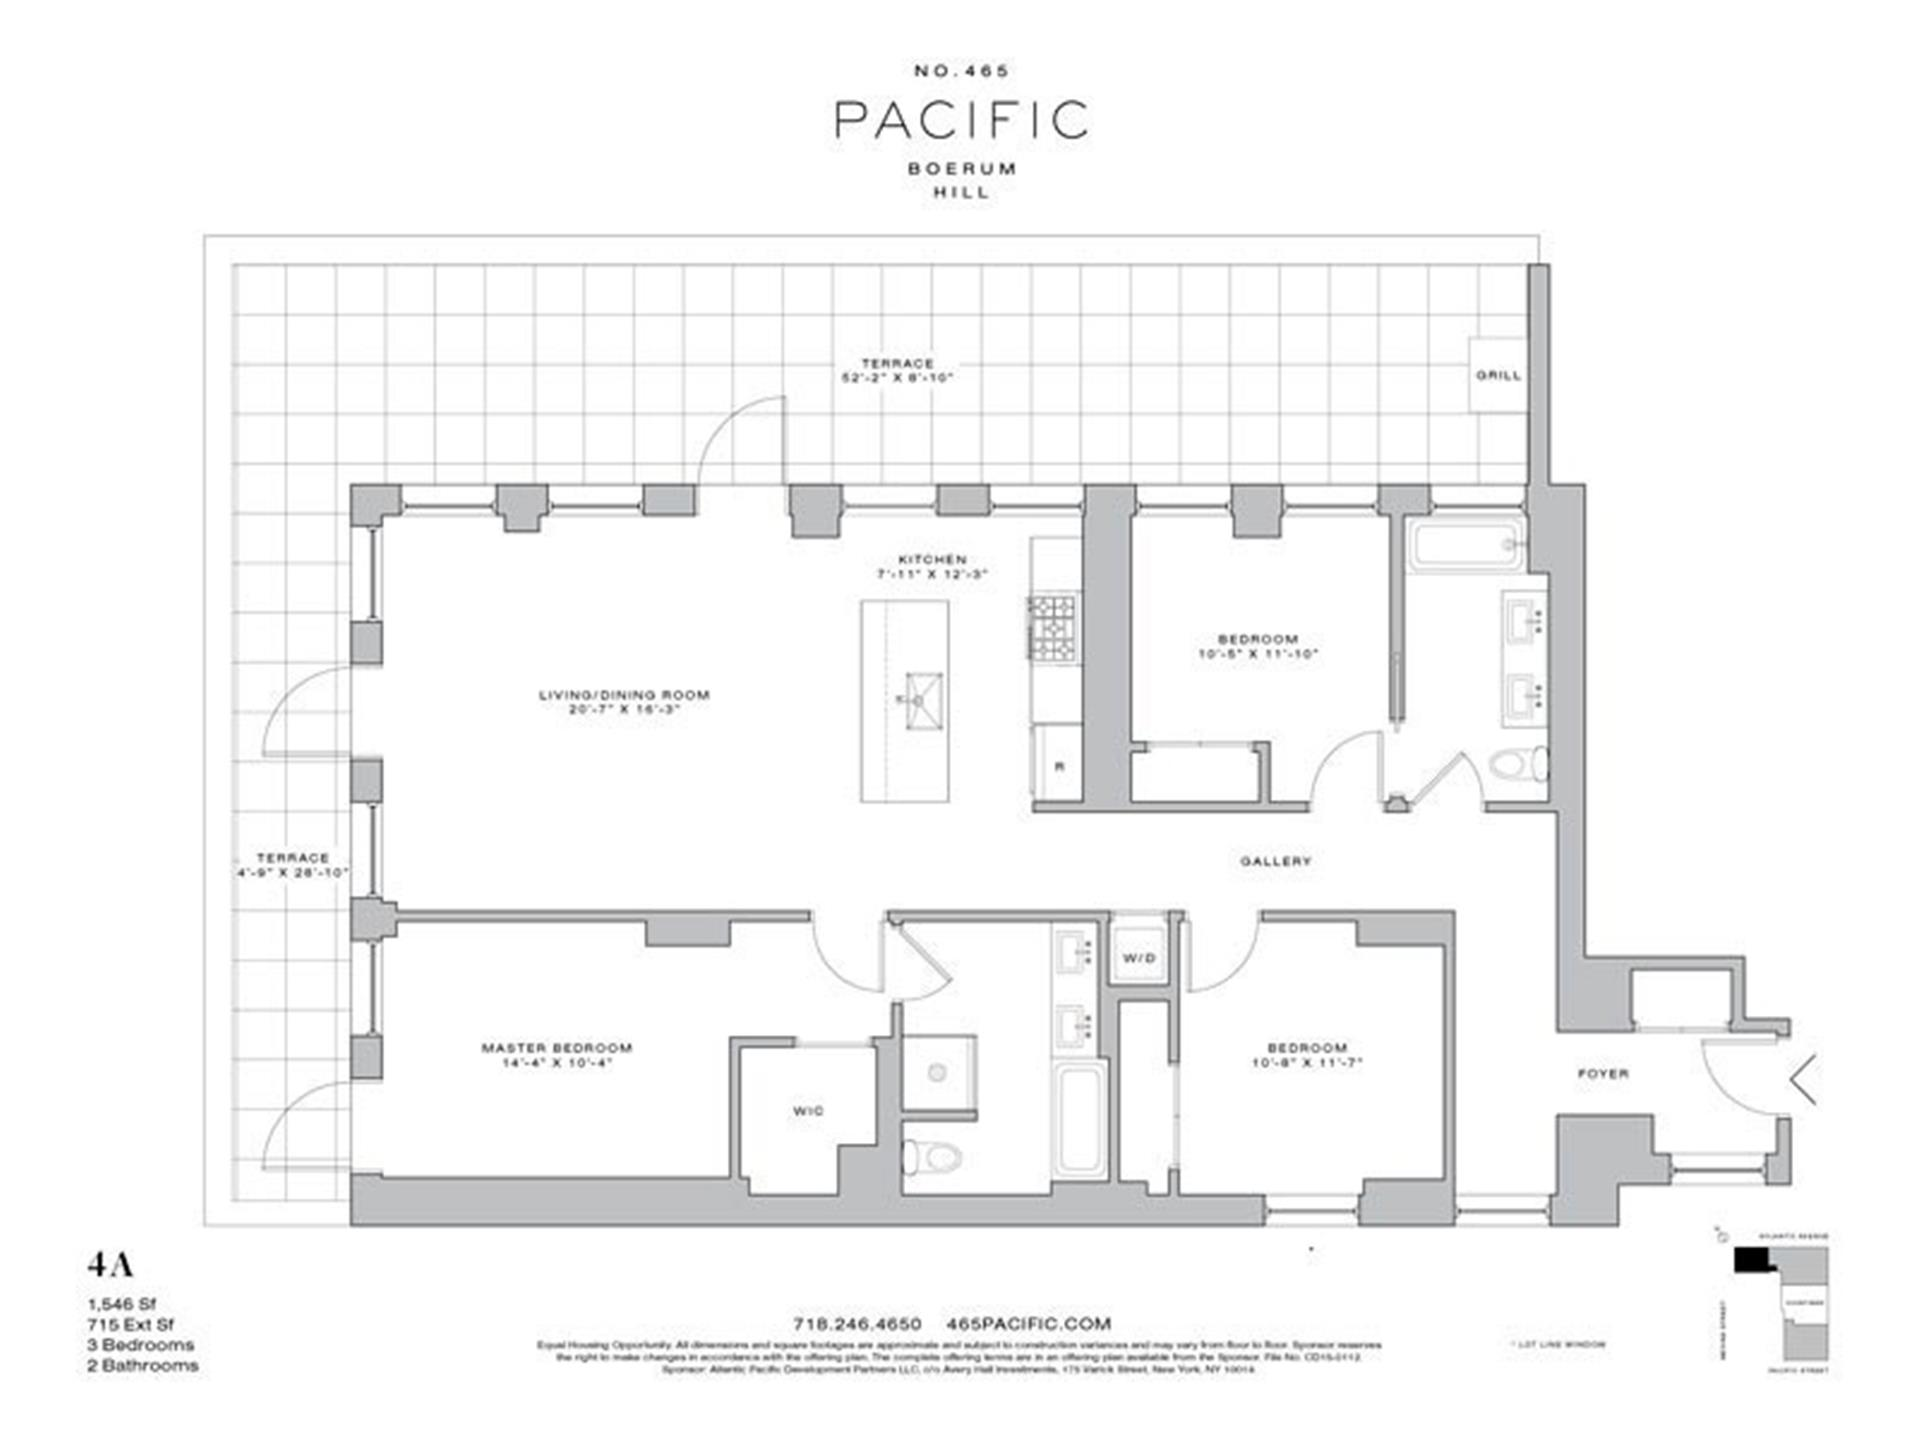 Floor plan of 465 Pacific St, 4A - Boerum Hill, New York